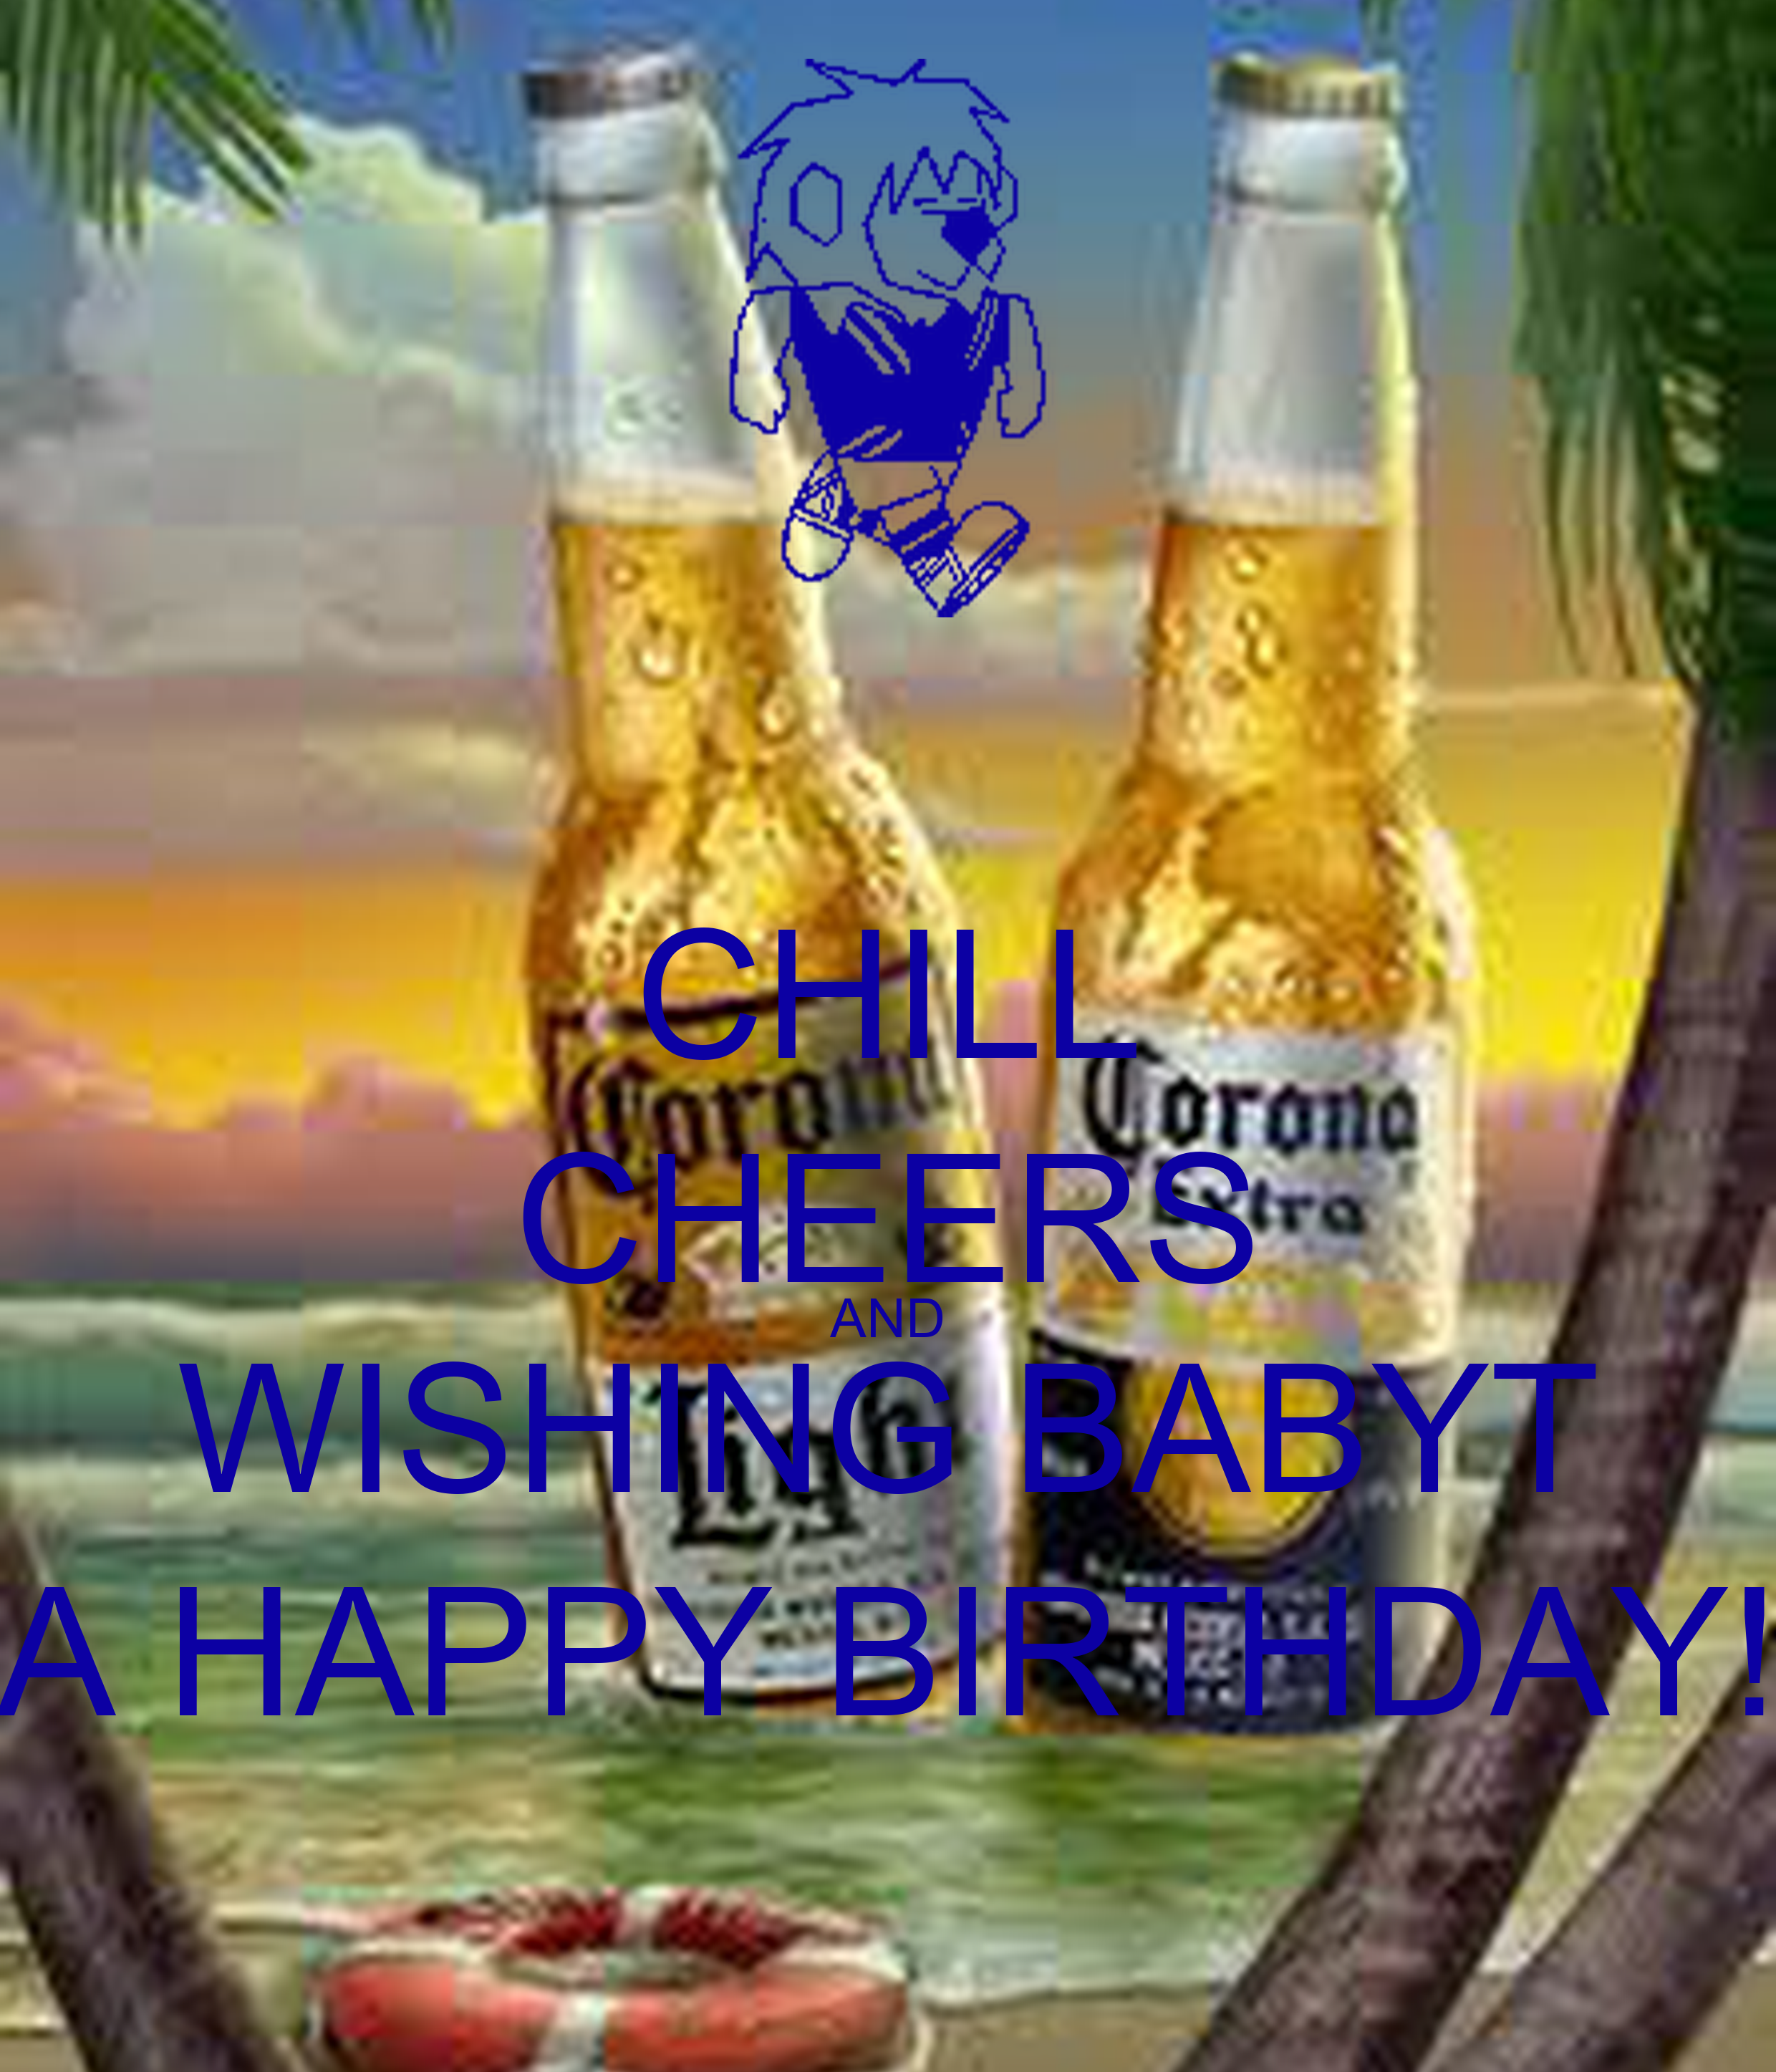 CHILL CHEERS AND WISHING BABYT A HAPPY BIRTHDAY! Poster